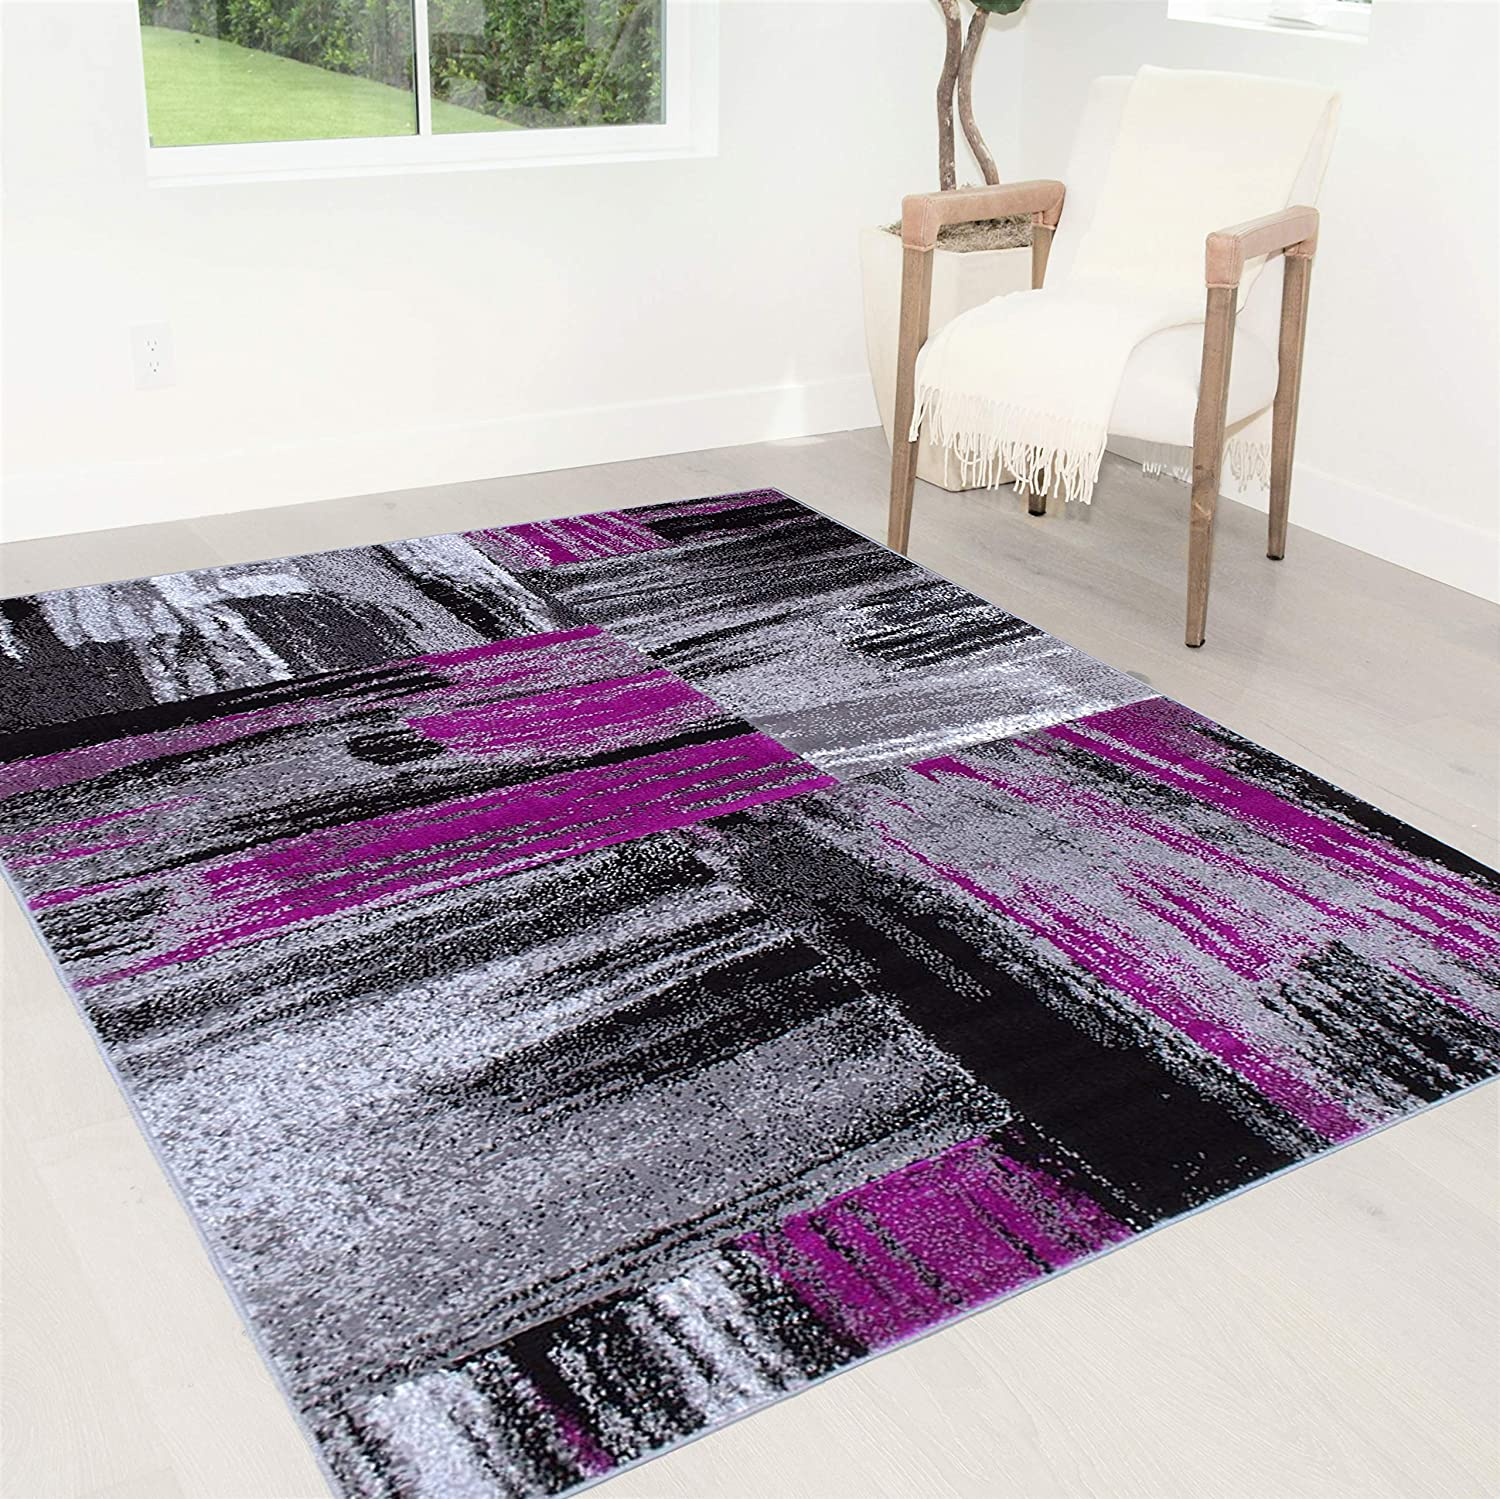 Handcraft Rugs Purple Gray Silver Black Abstract Contemporary Modern Brush Design Mixed Colors Area Rug Kitchen Dining